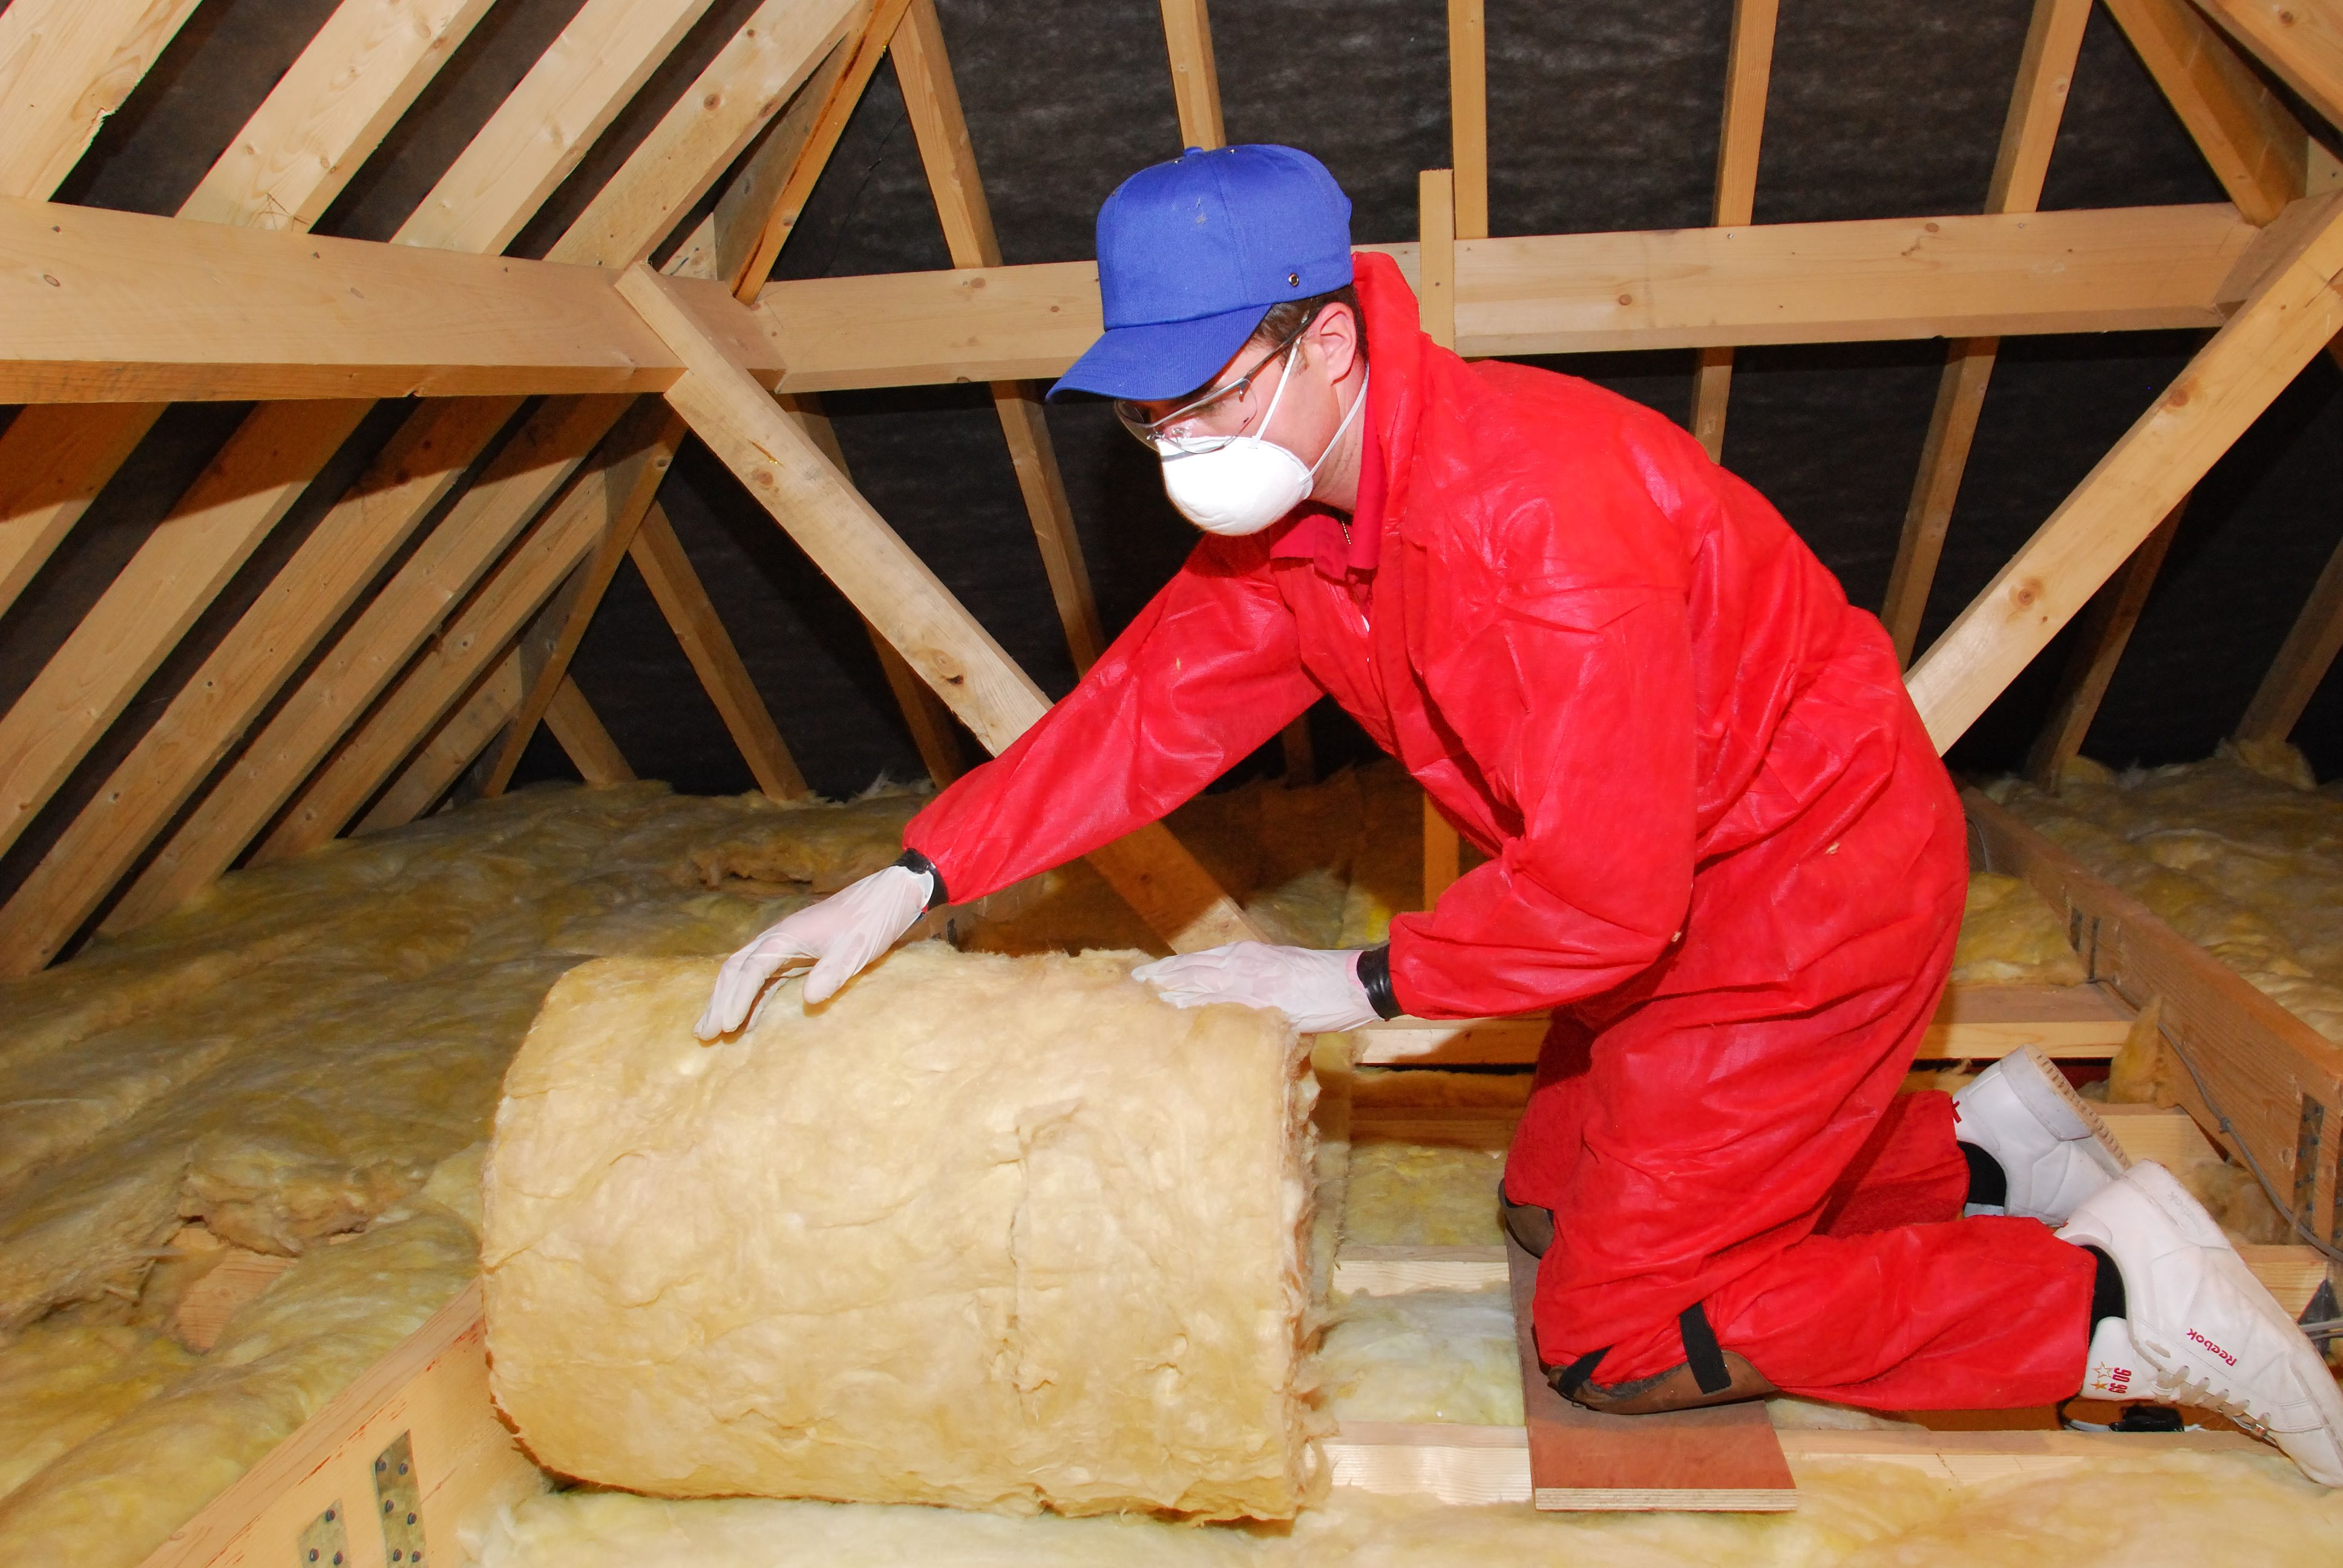 Loft insulation help in prevention of heat. The roof is determined as the  roles of